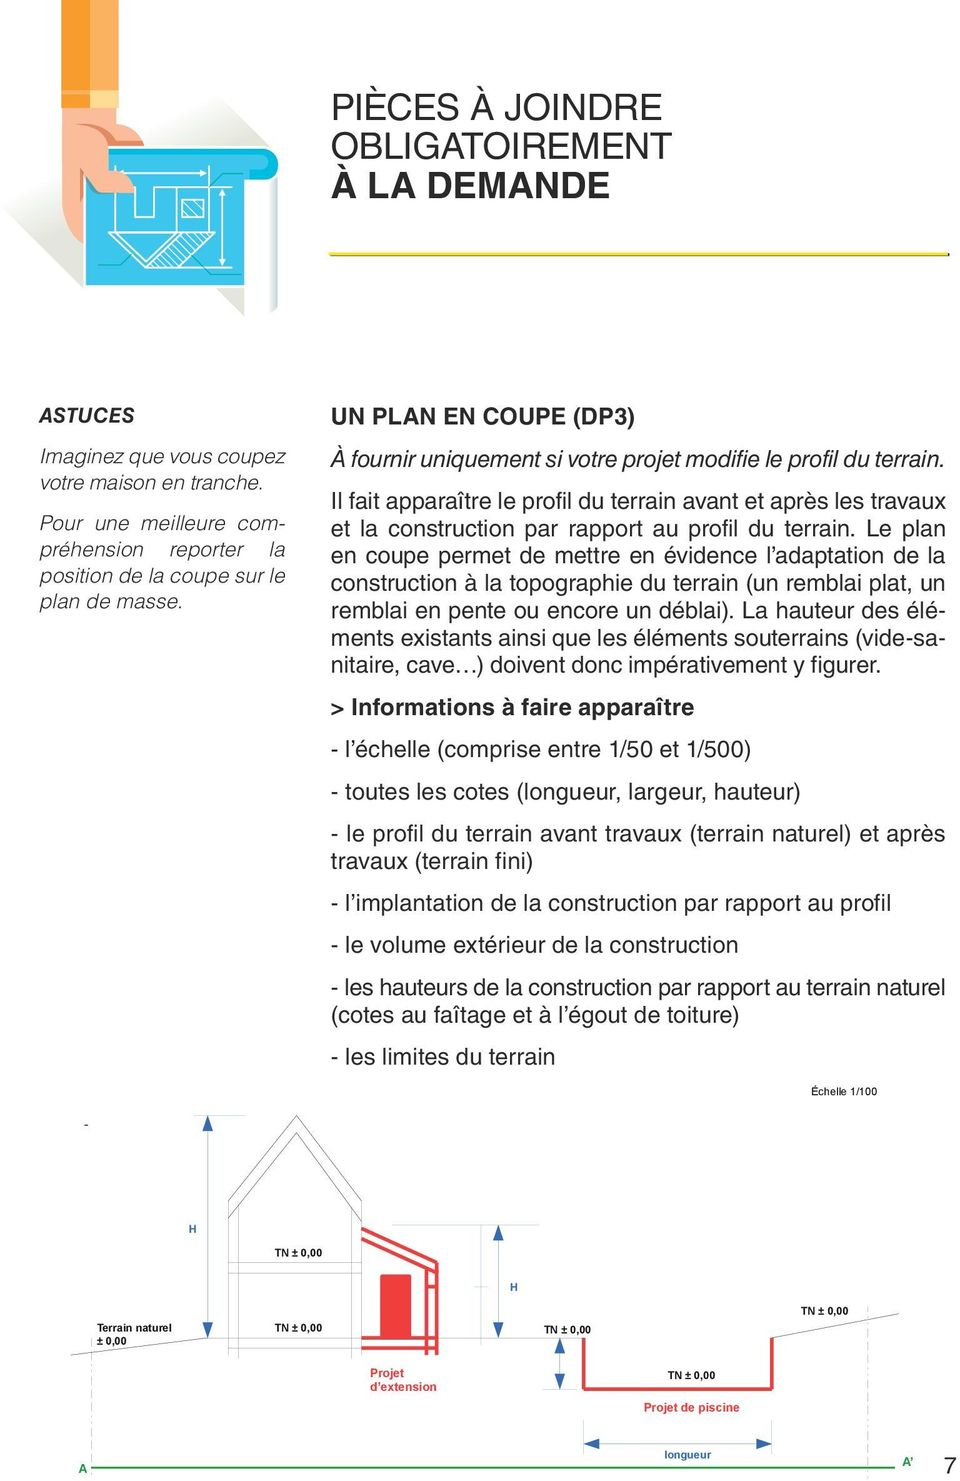 Le guide de la d claration pr alable d claration - Un plan en coupe du terrain et de la construction ...